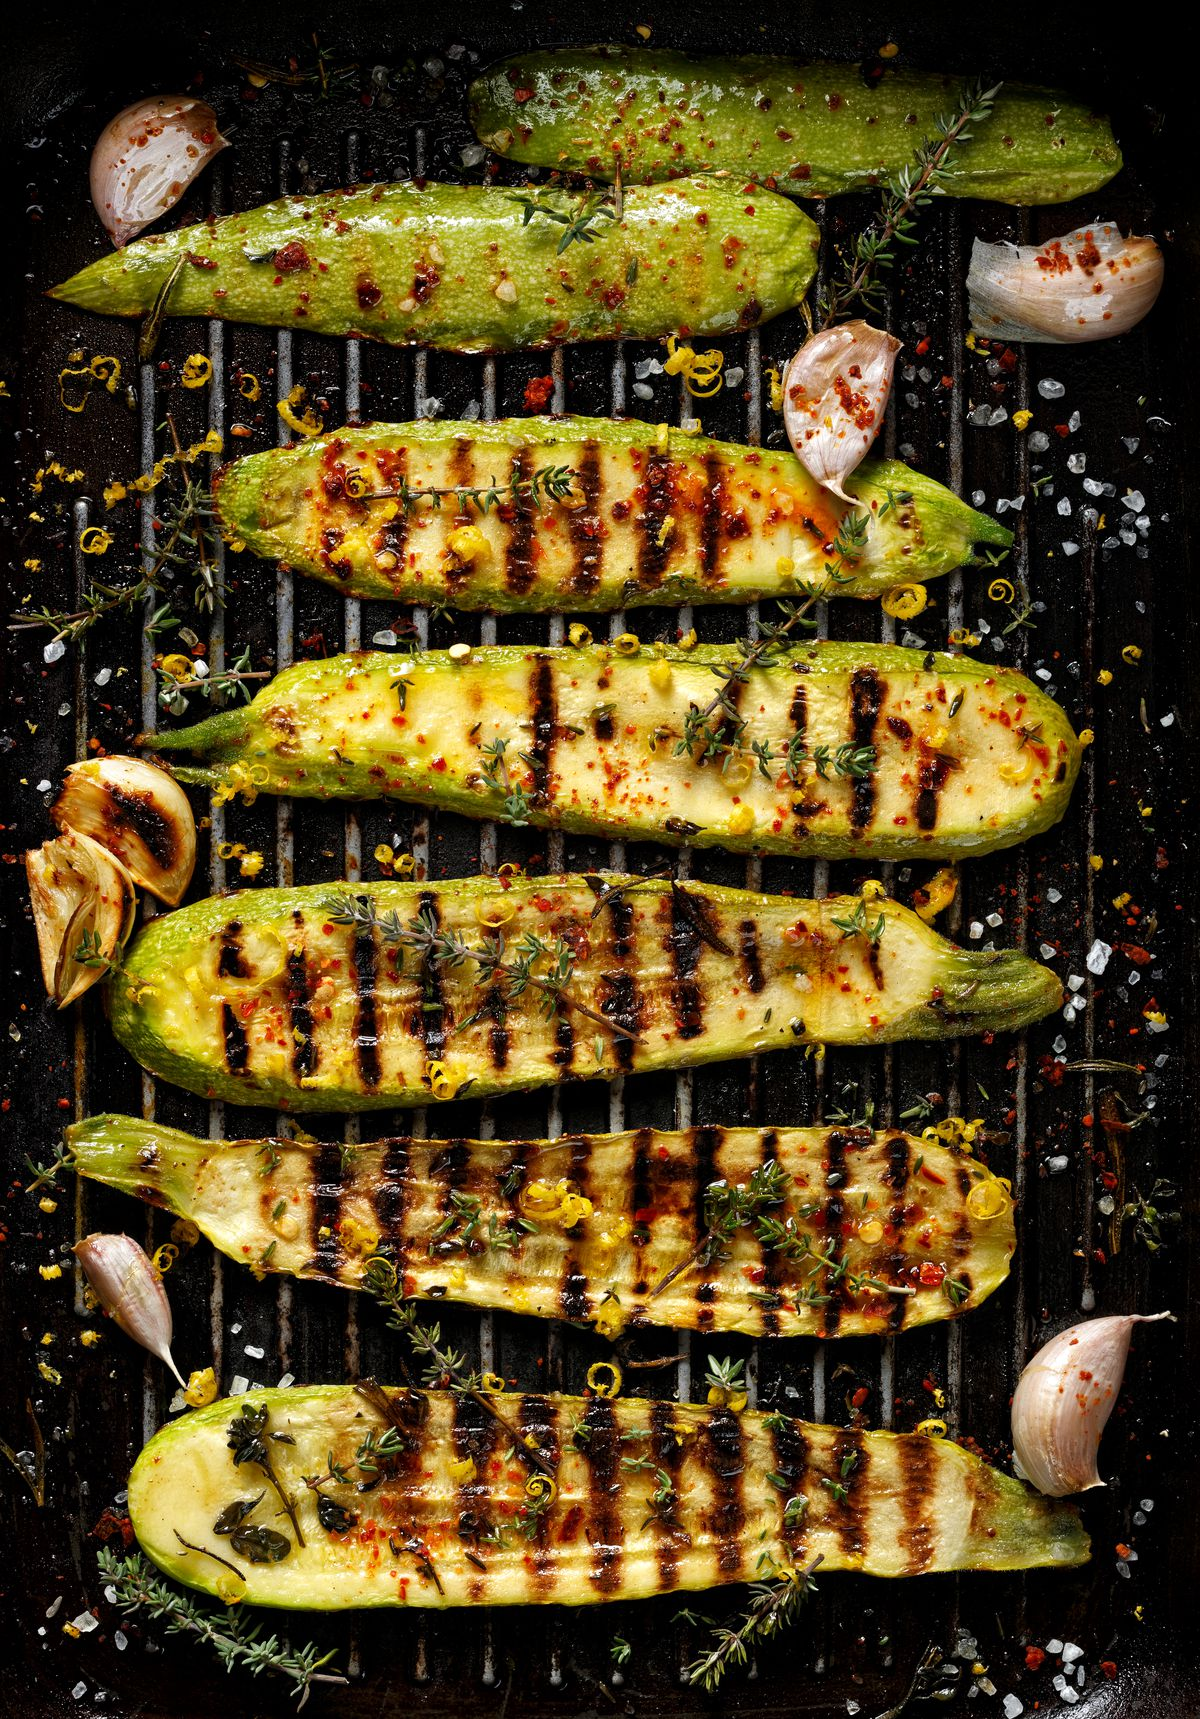 Halved zucchinis sit on a grill, with grill marks visible on the vegetables. A few cloves of garlic are scattered around them.